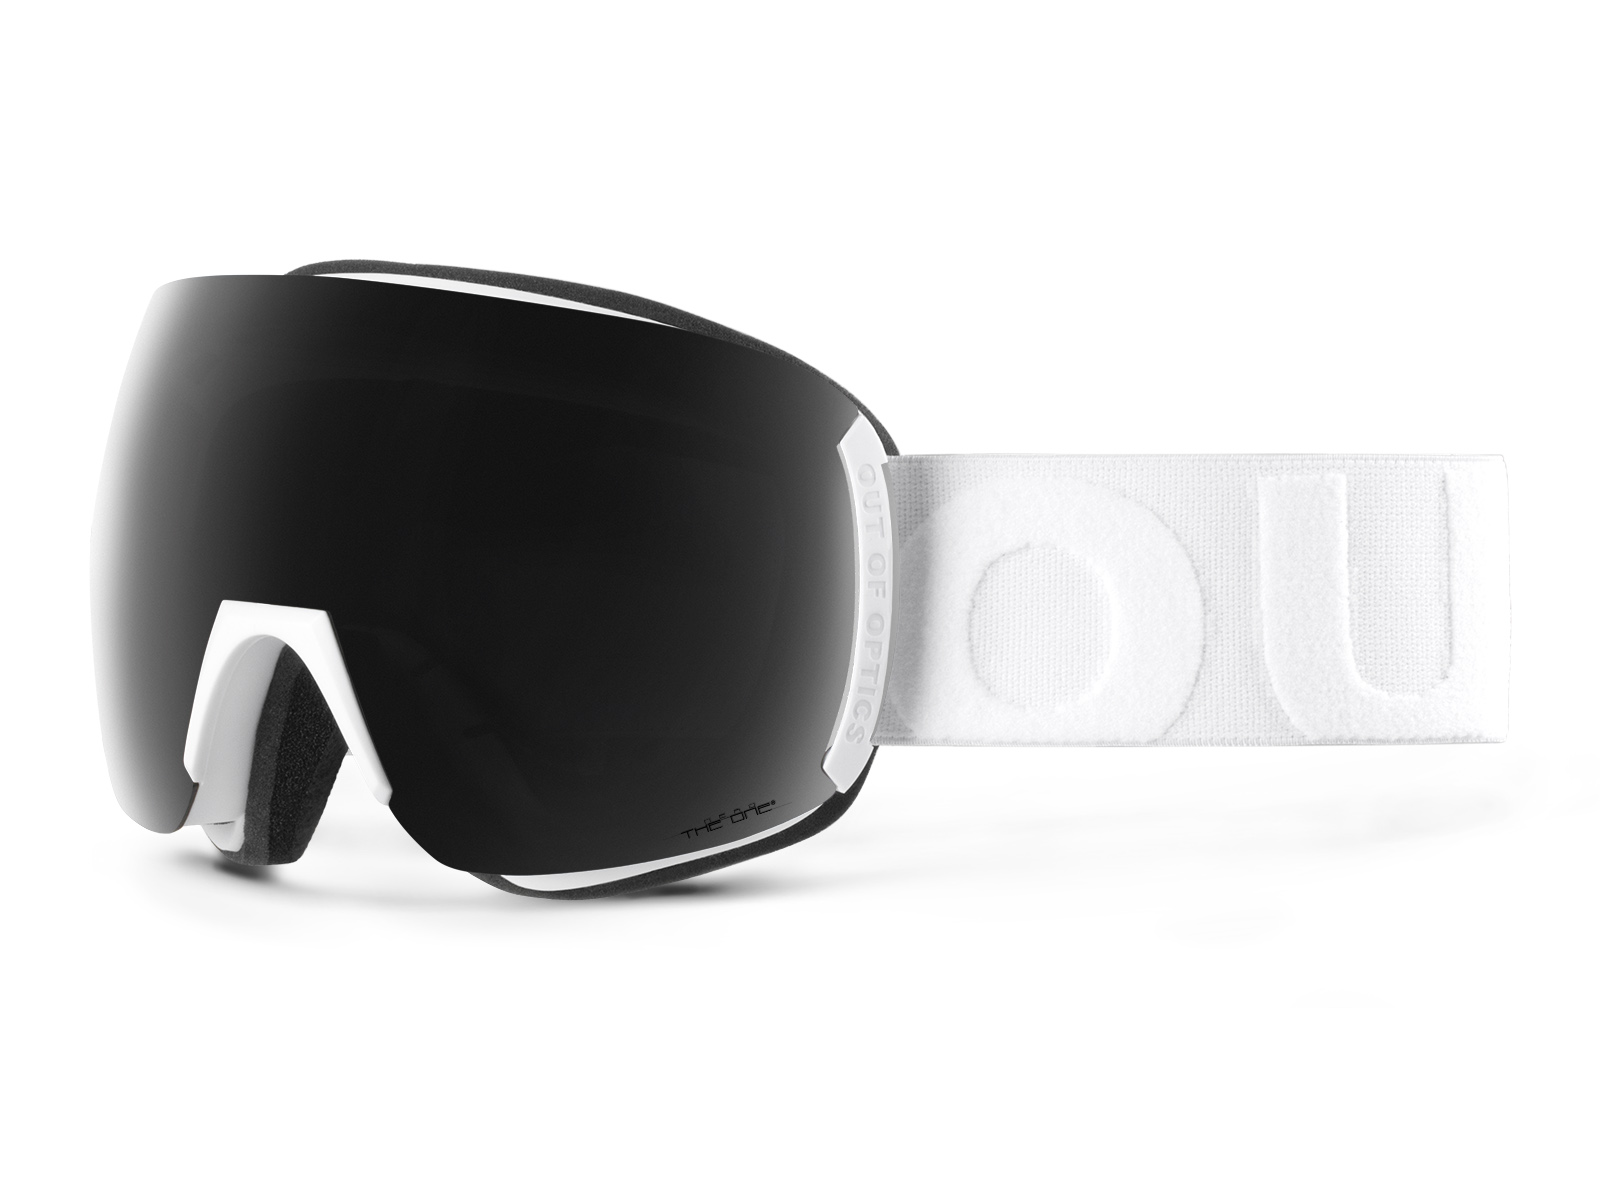 EARTH WHITE THE ONE NERO GOGGLE